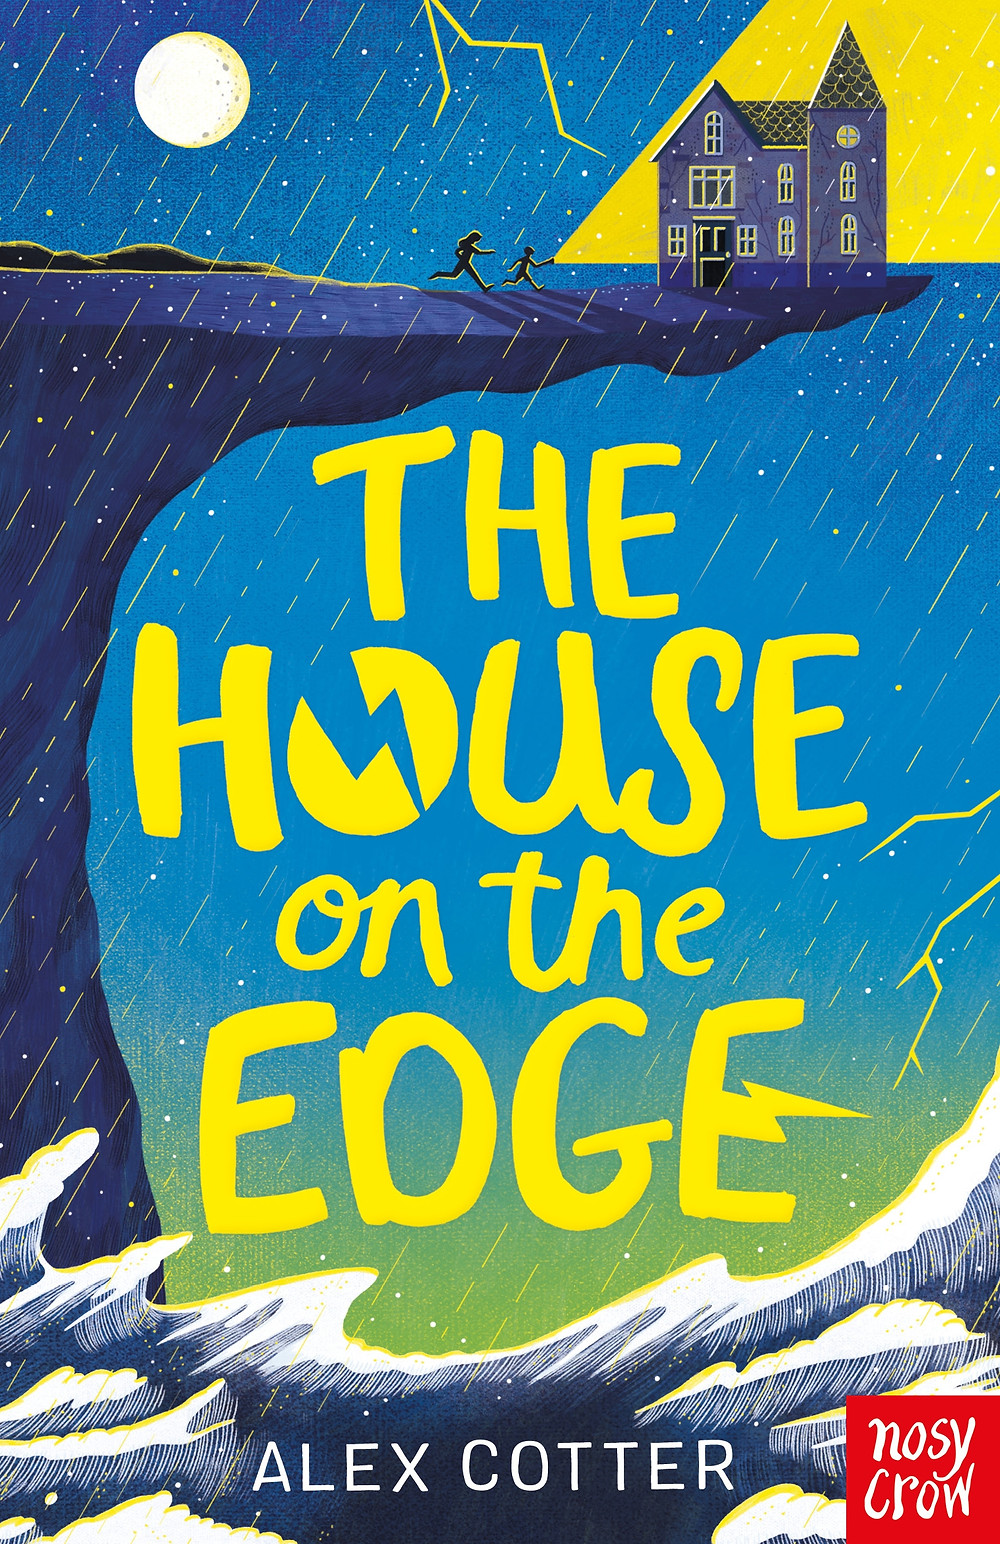 The House on the Edge by Alex Cotter, cover design by Kathrin Honestana, published by Nosy Crow